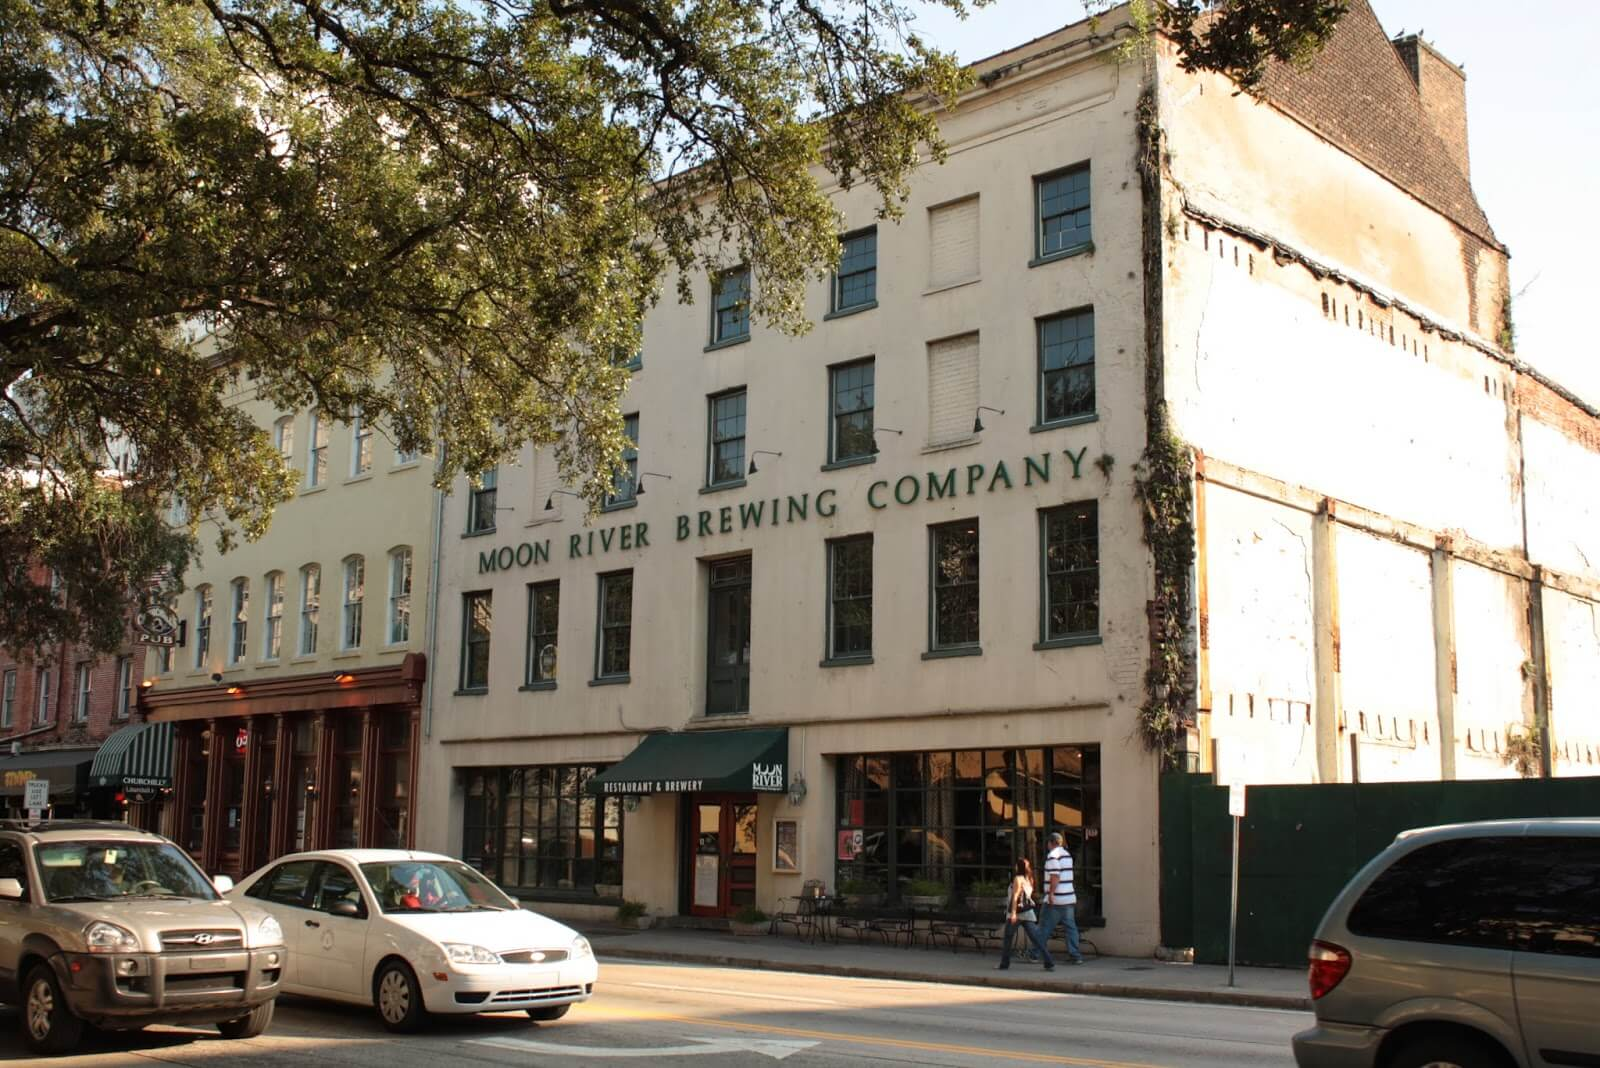 most haunted places in america, Moon River Brewery